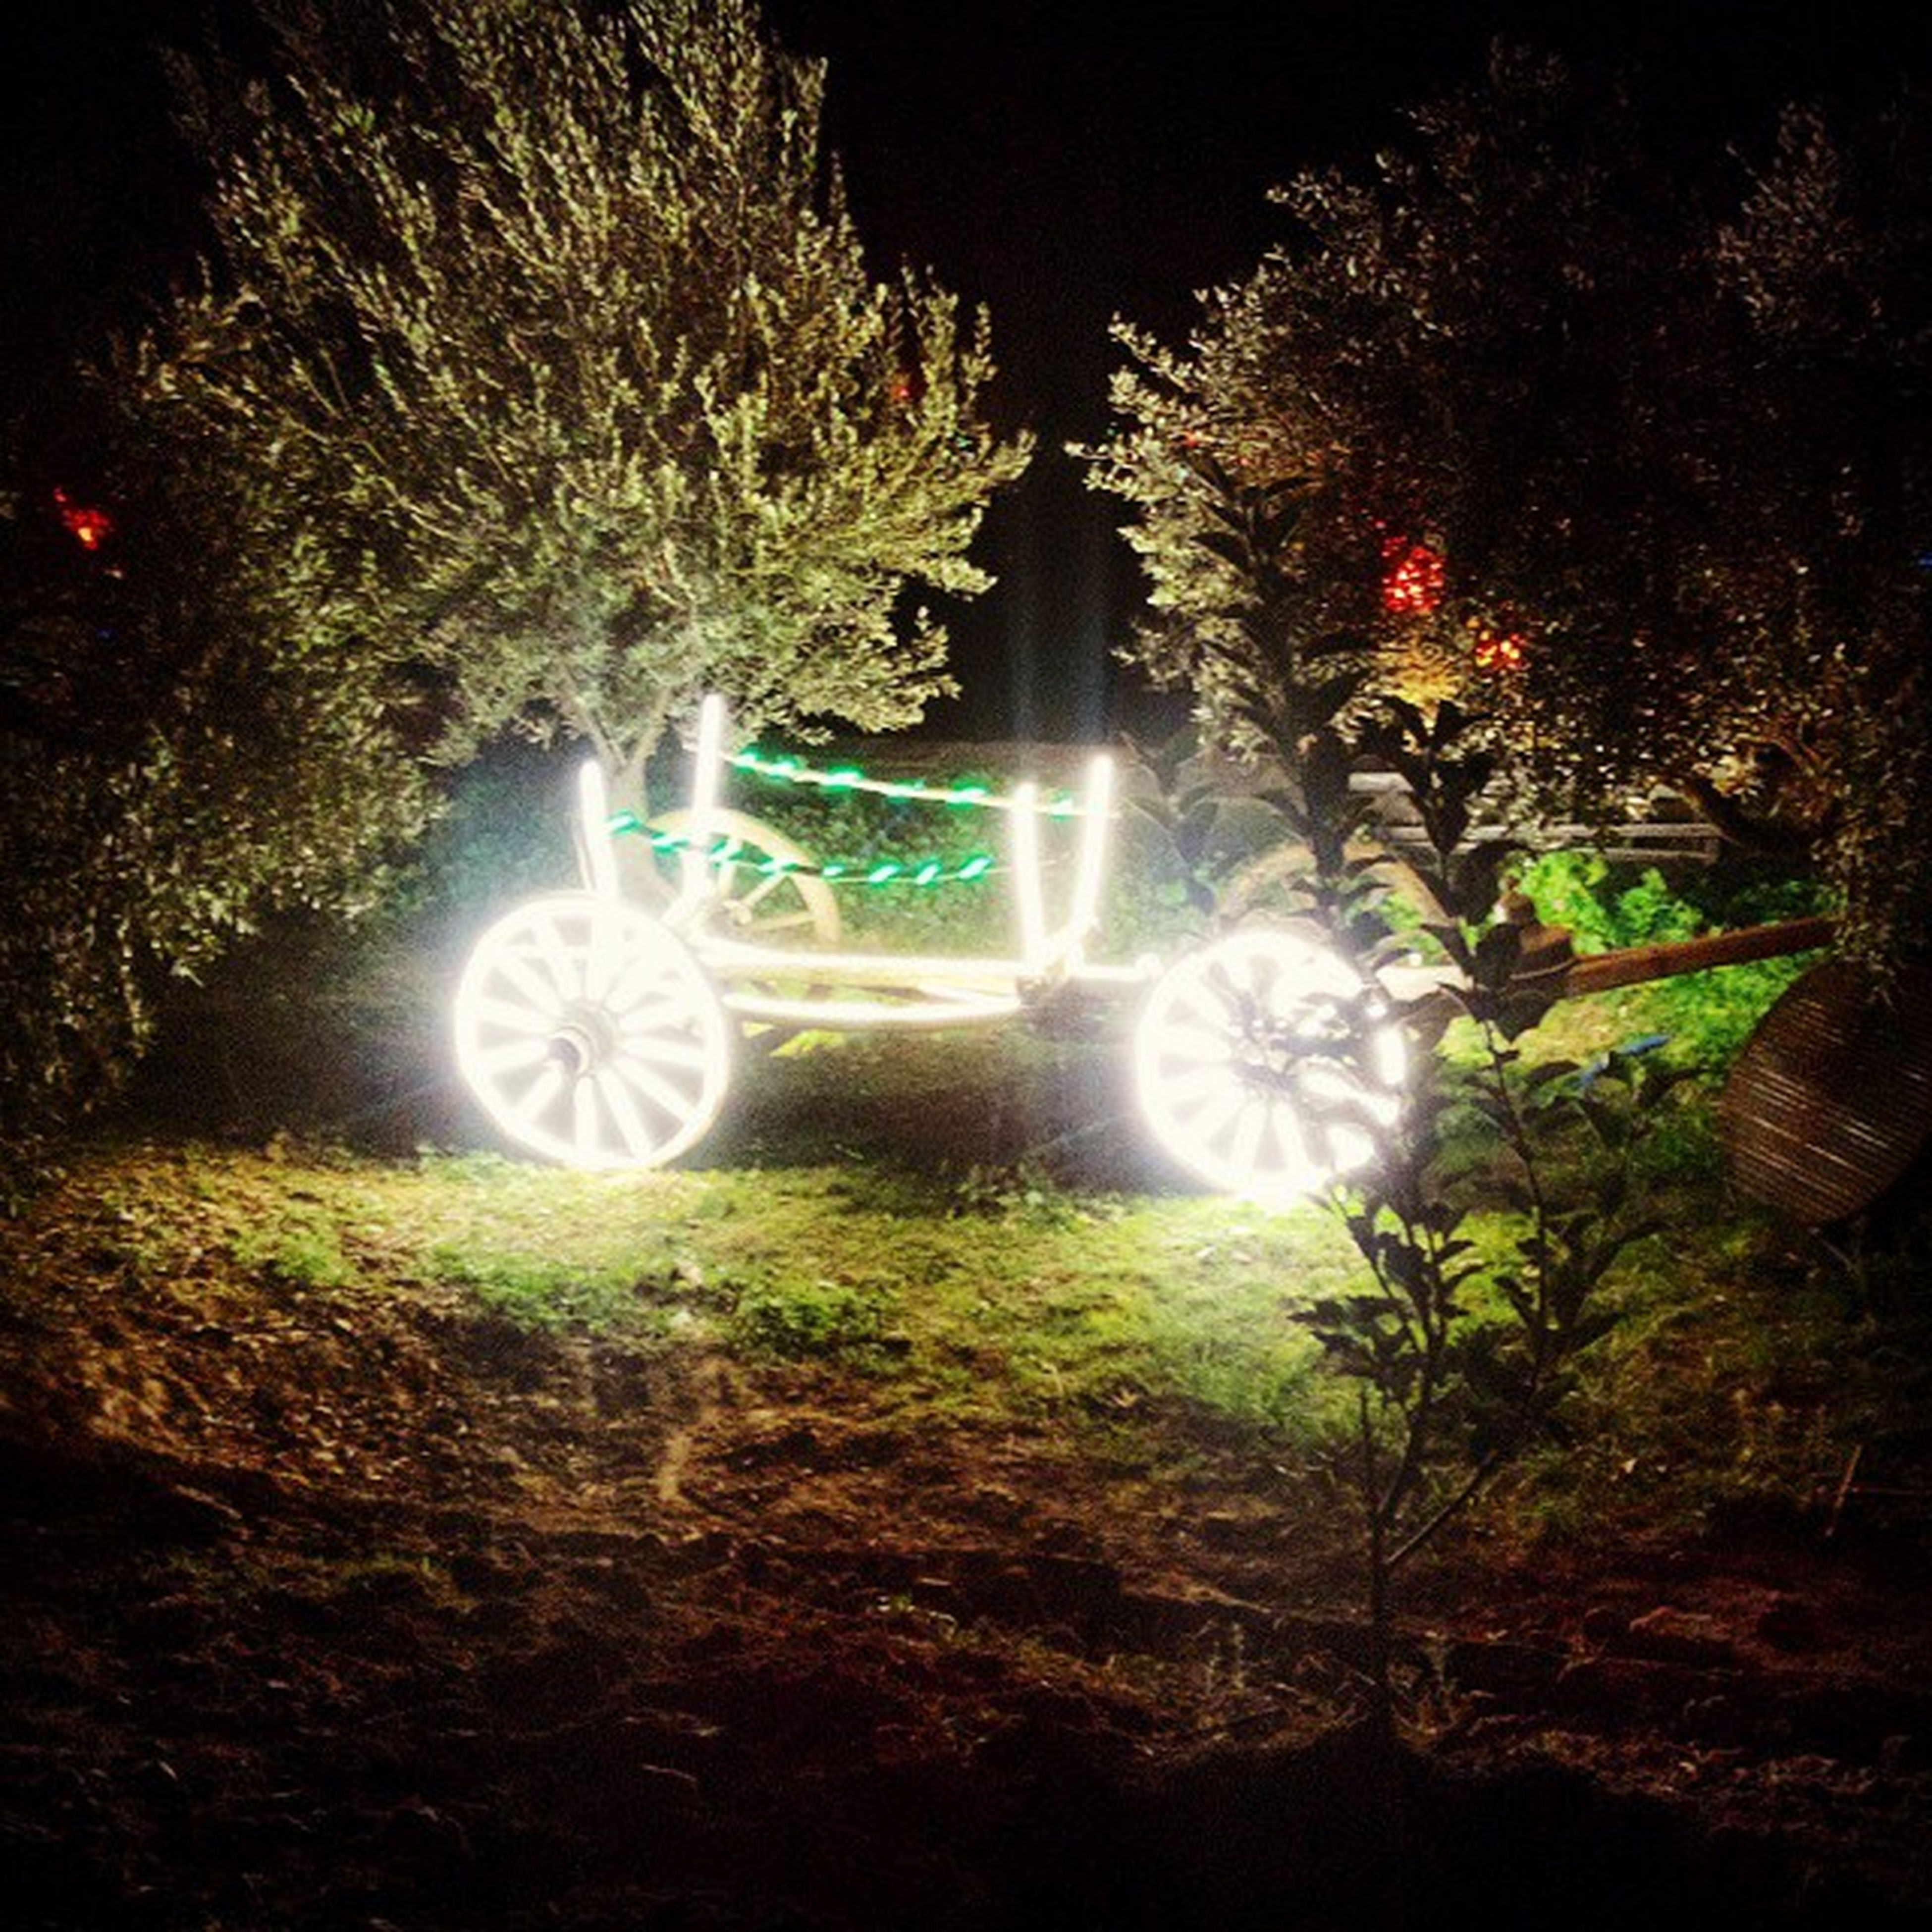 illuminated, night, tree, glowing, lighting equipment, long exposure, light - natural phenomenon, green color, street light, motion, growth, park - man made space, outdoors, no people, nature, fountain, plant, multi colored, tranquility, blurred motion